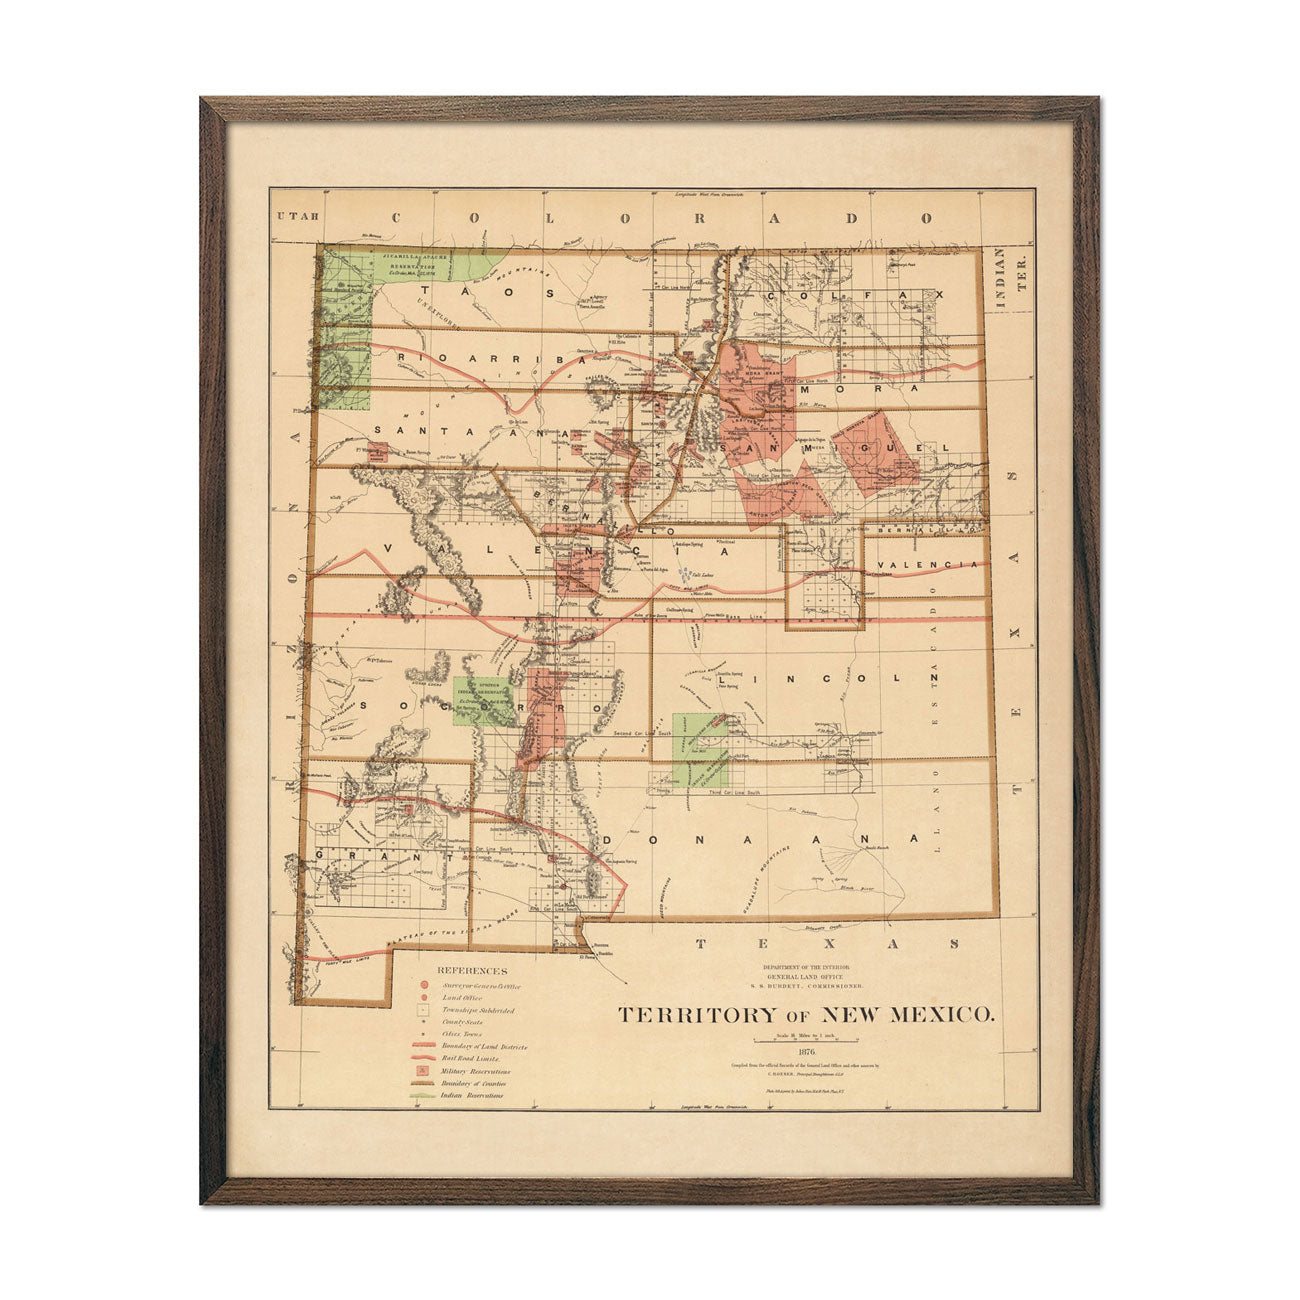 Map of New Mexico Territory 1876